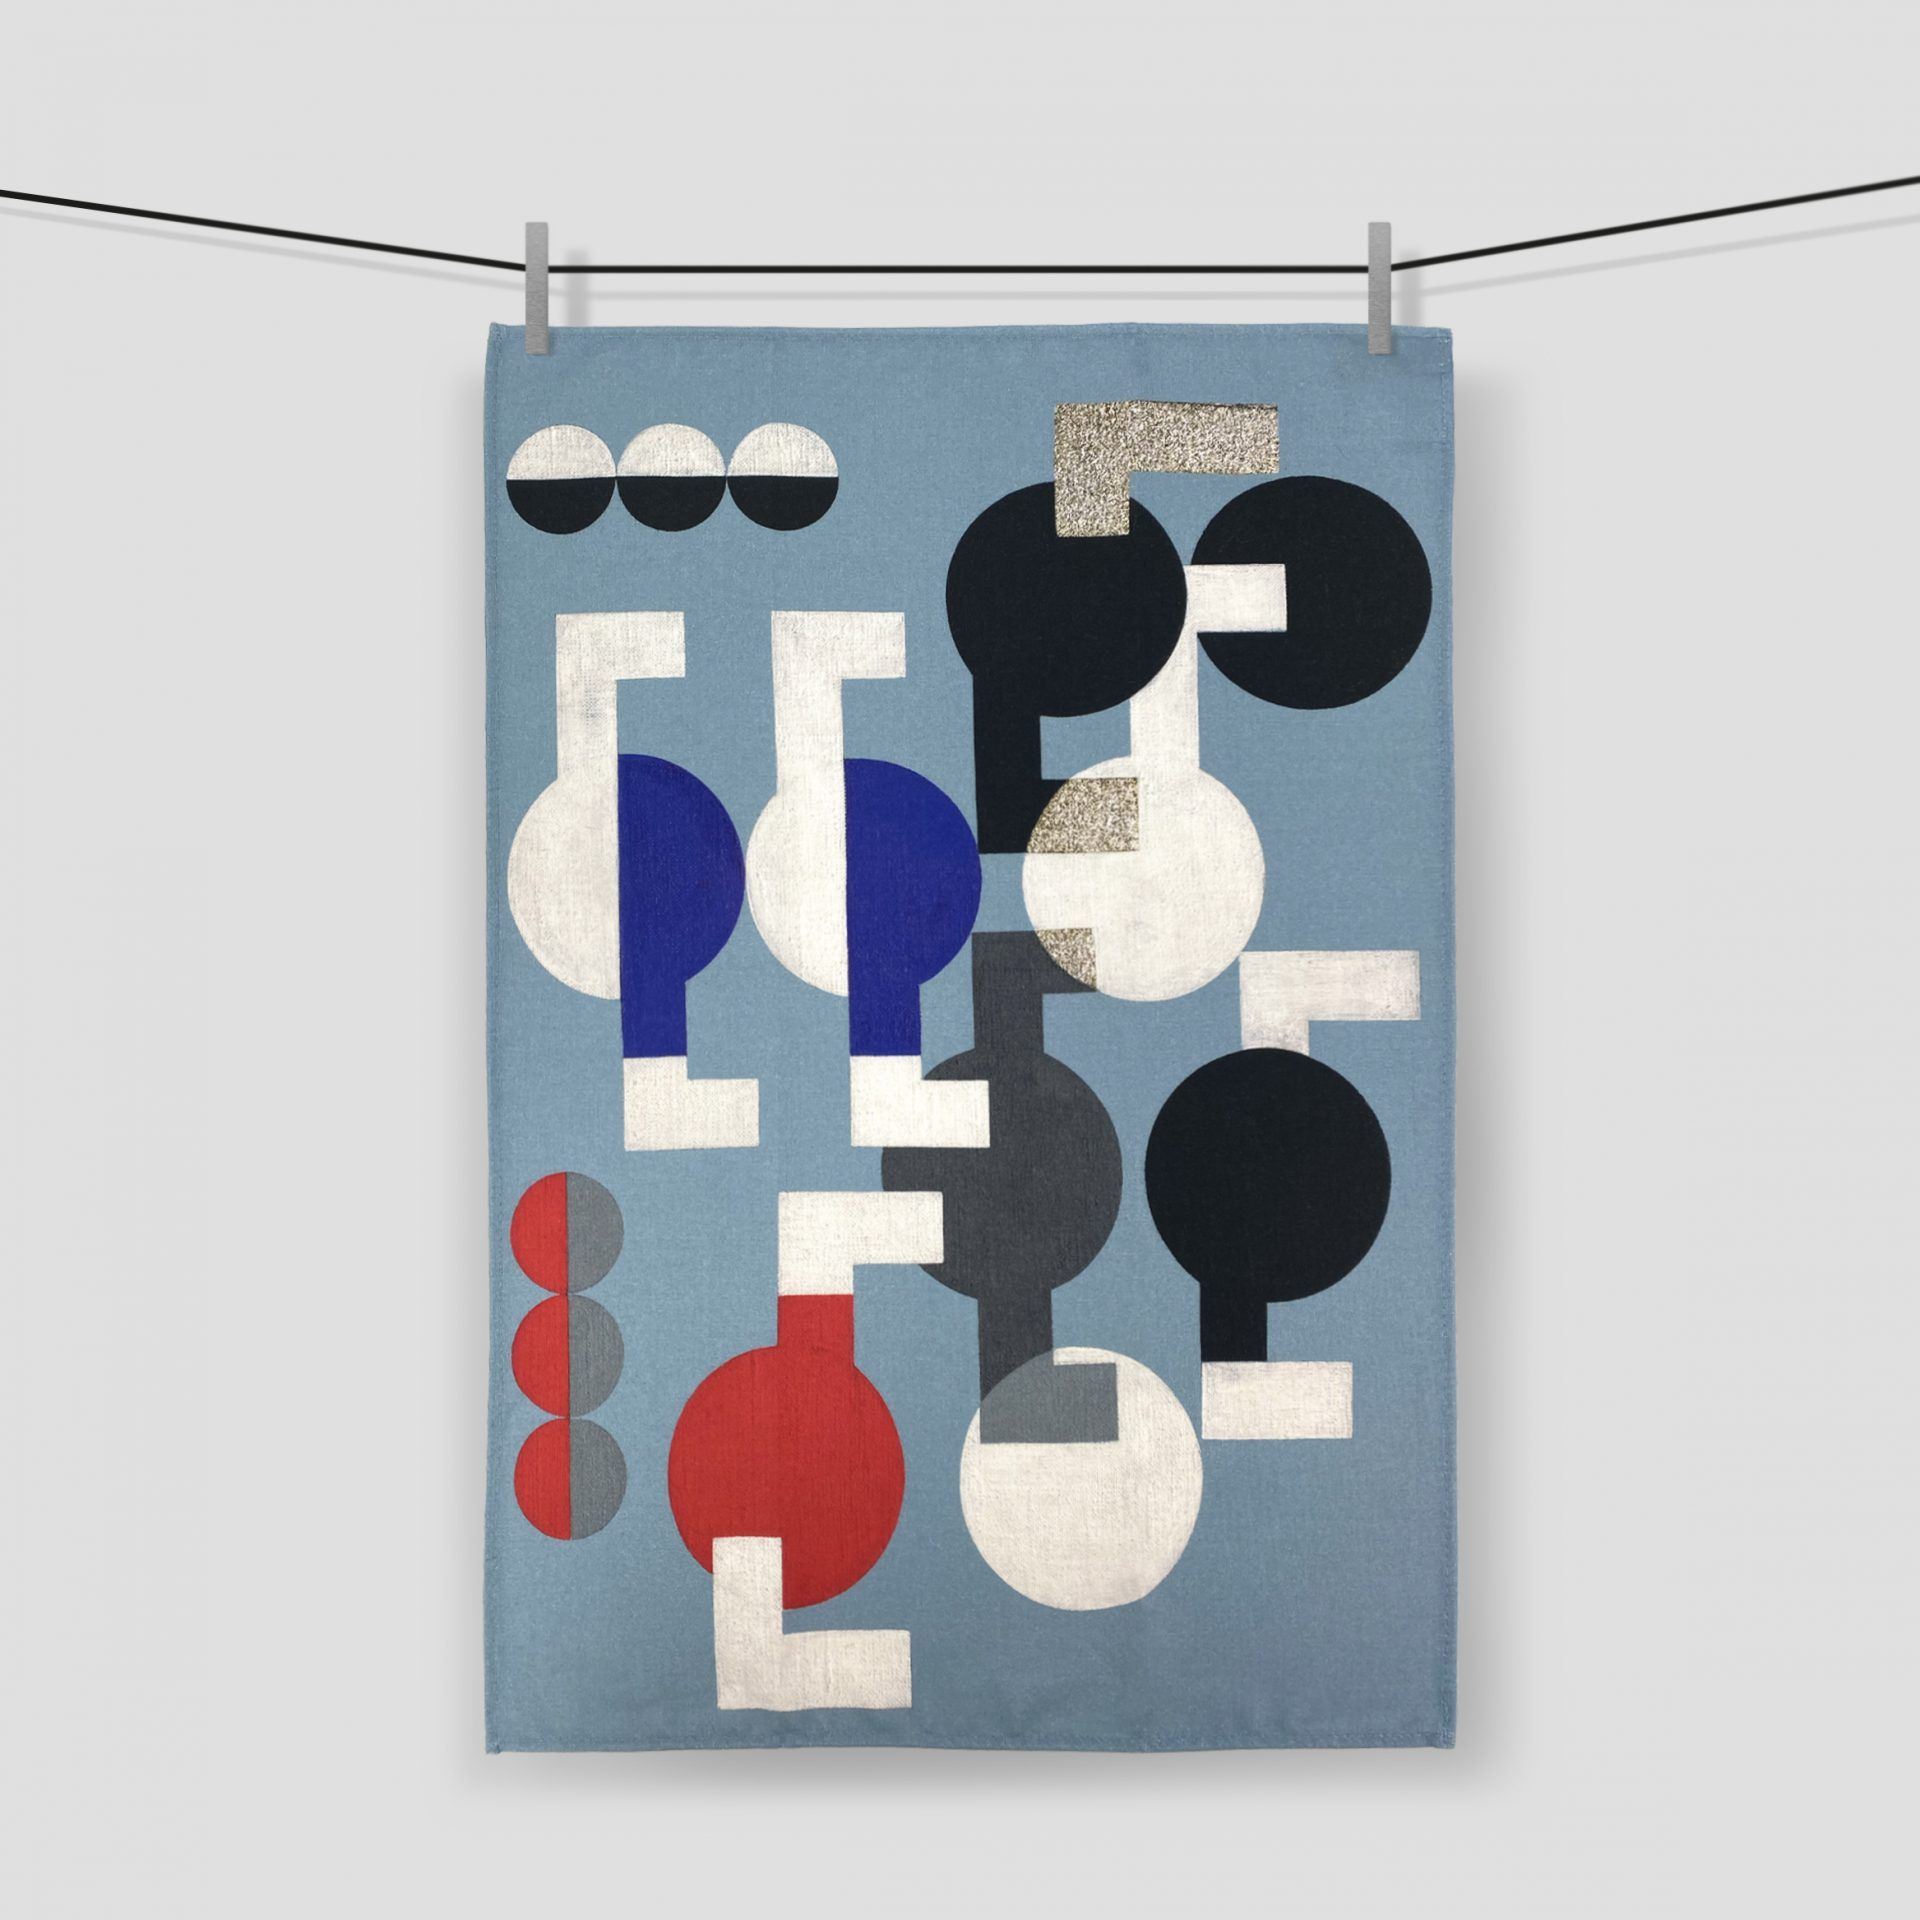 Printed tea towels made in the UK for the Tate Enterprises Sophie Tauber